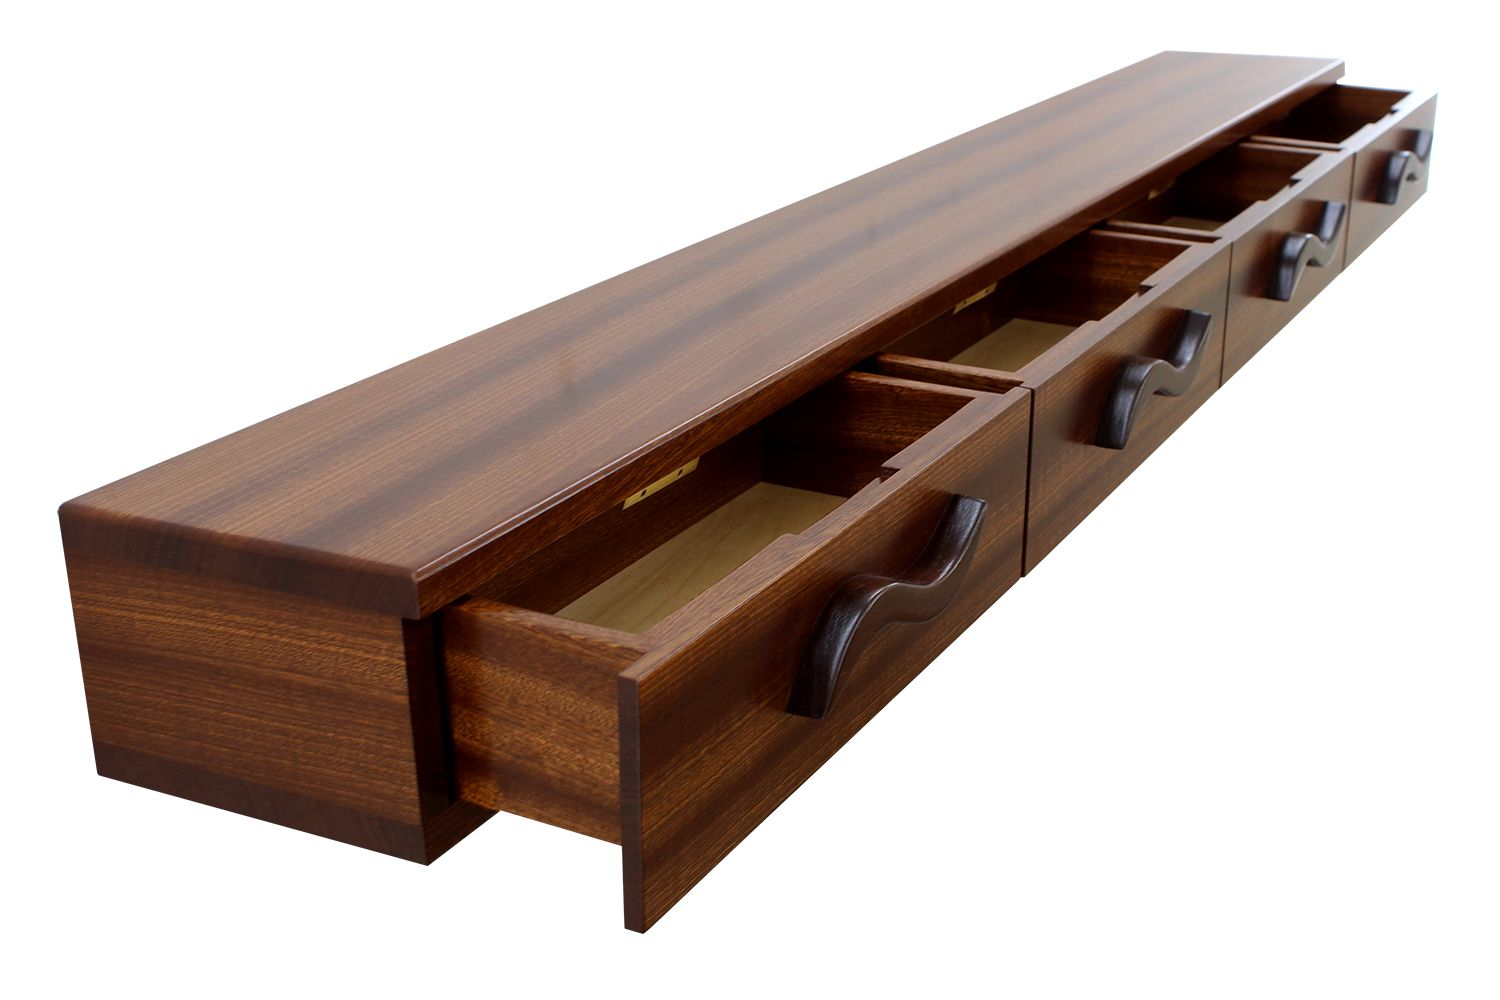 Buy Hand Crafted 4 Drawer Floating Shelf Solid Wood